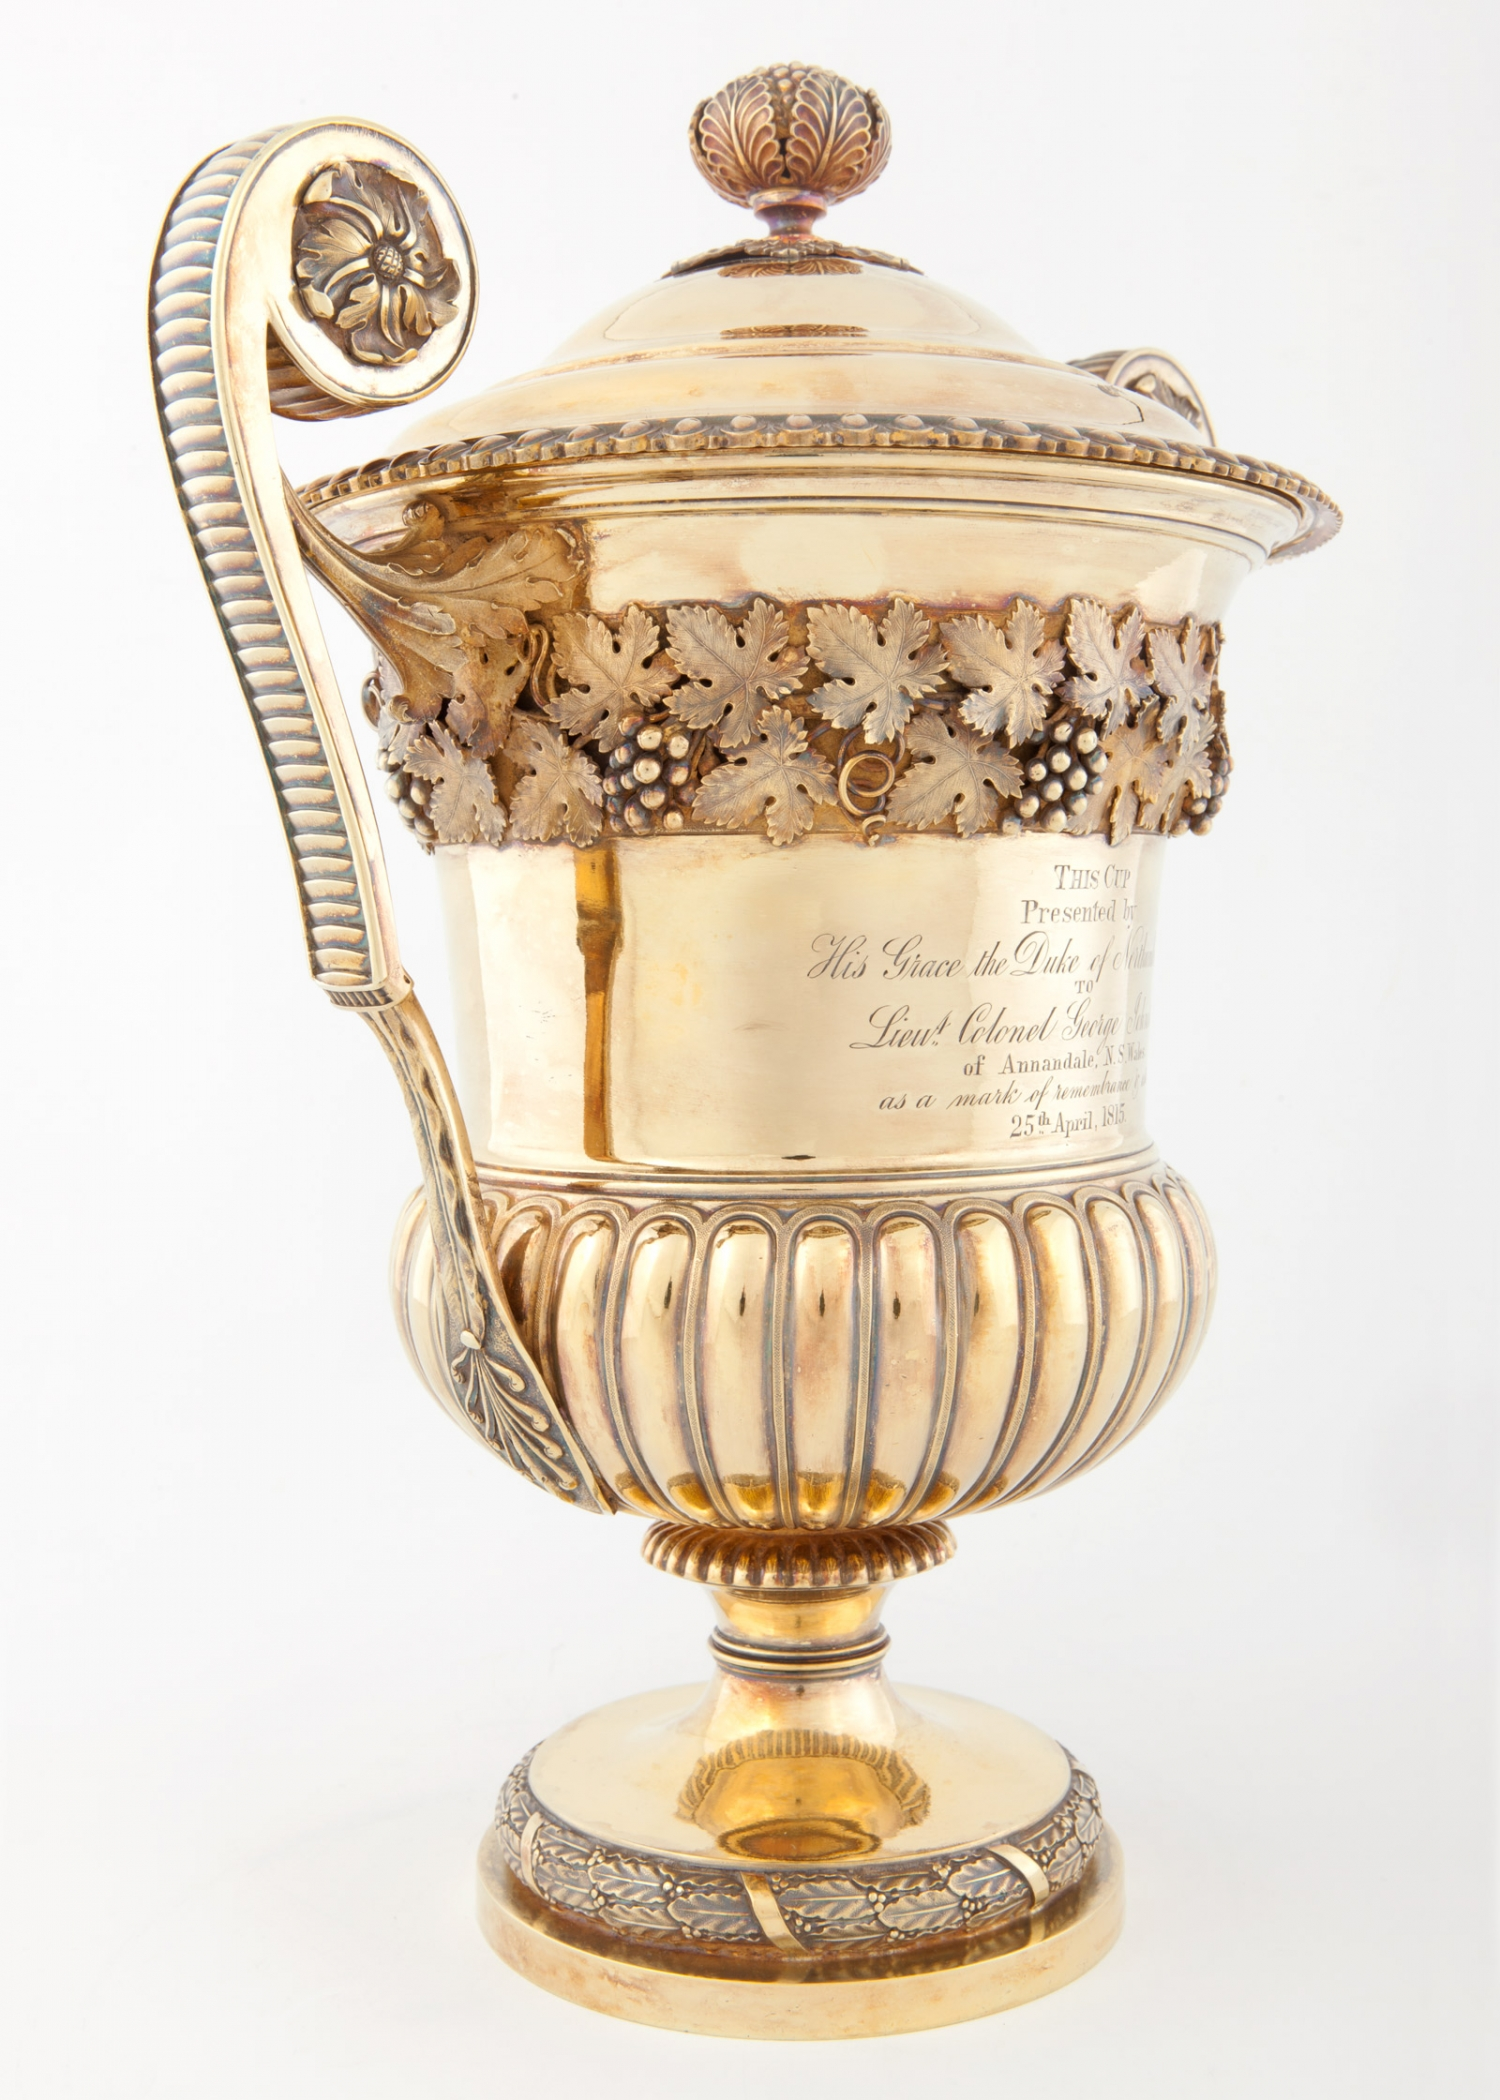 Urn shaped silver gilt cup (detail) presented to Lieutenant Colonel George Johnston, 1814